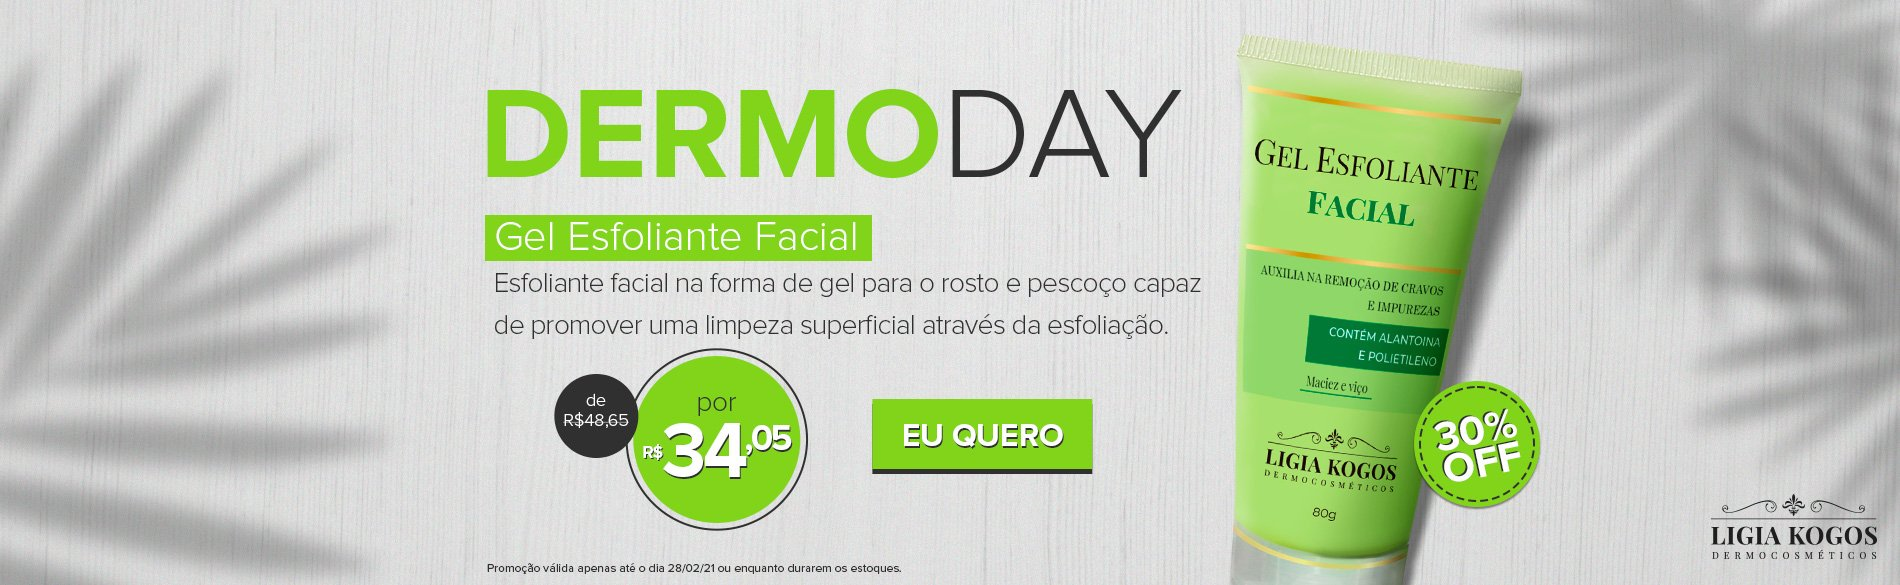 Dermo Day - Esfoliante Facial